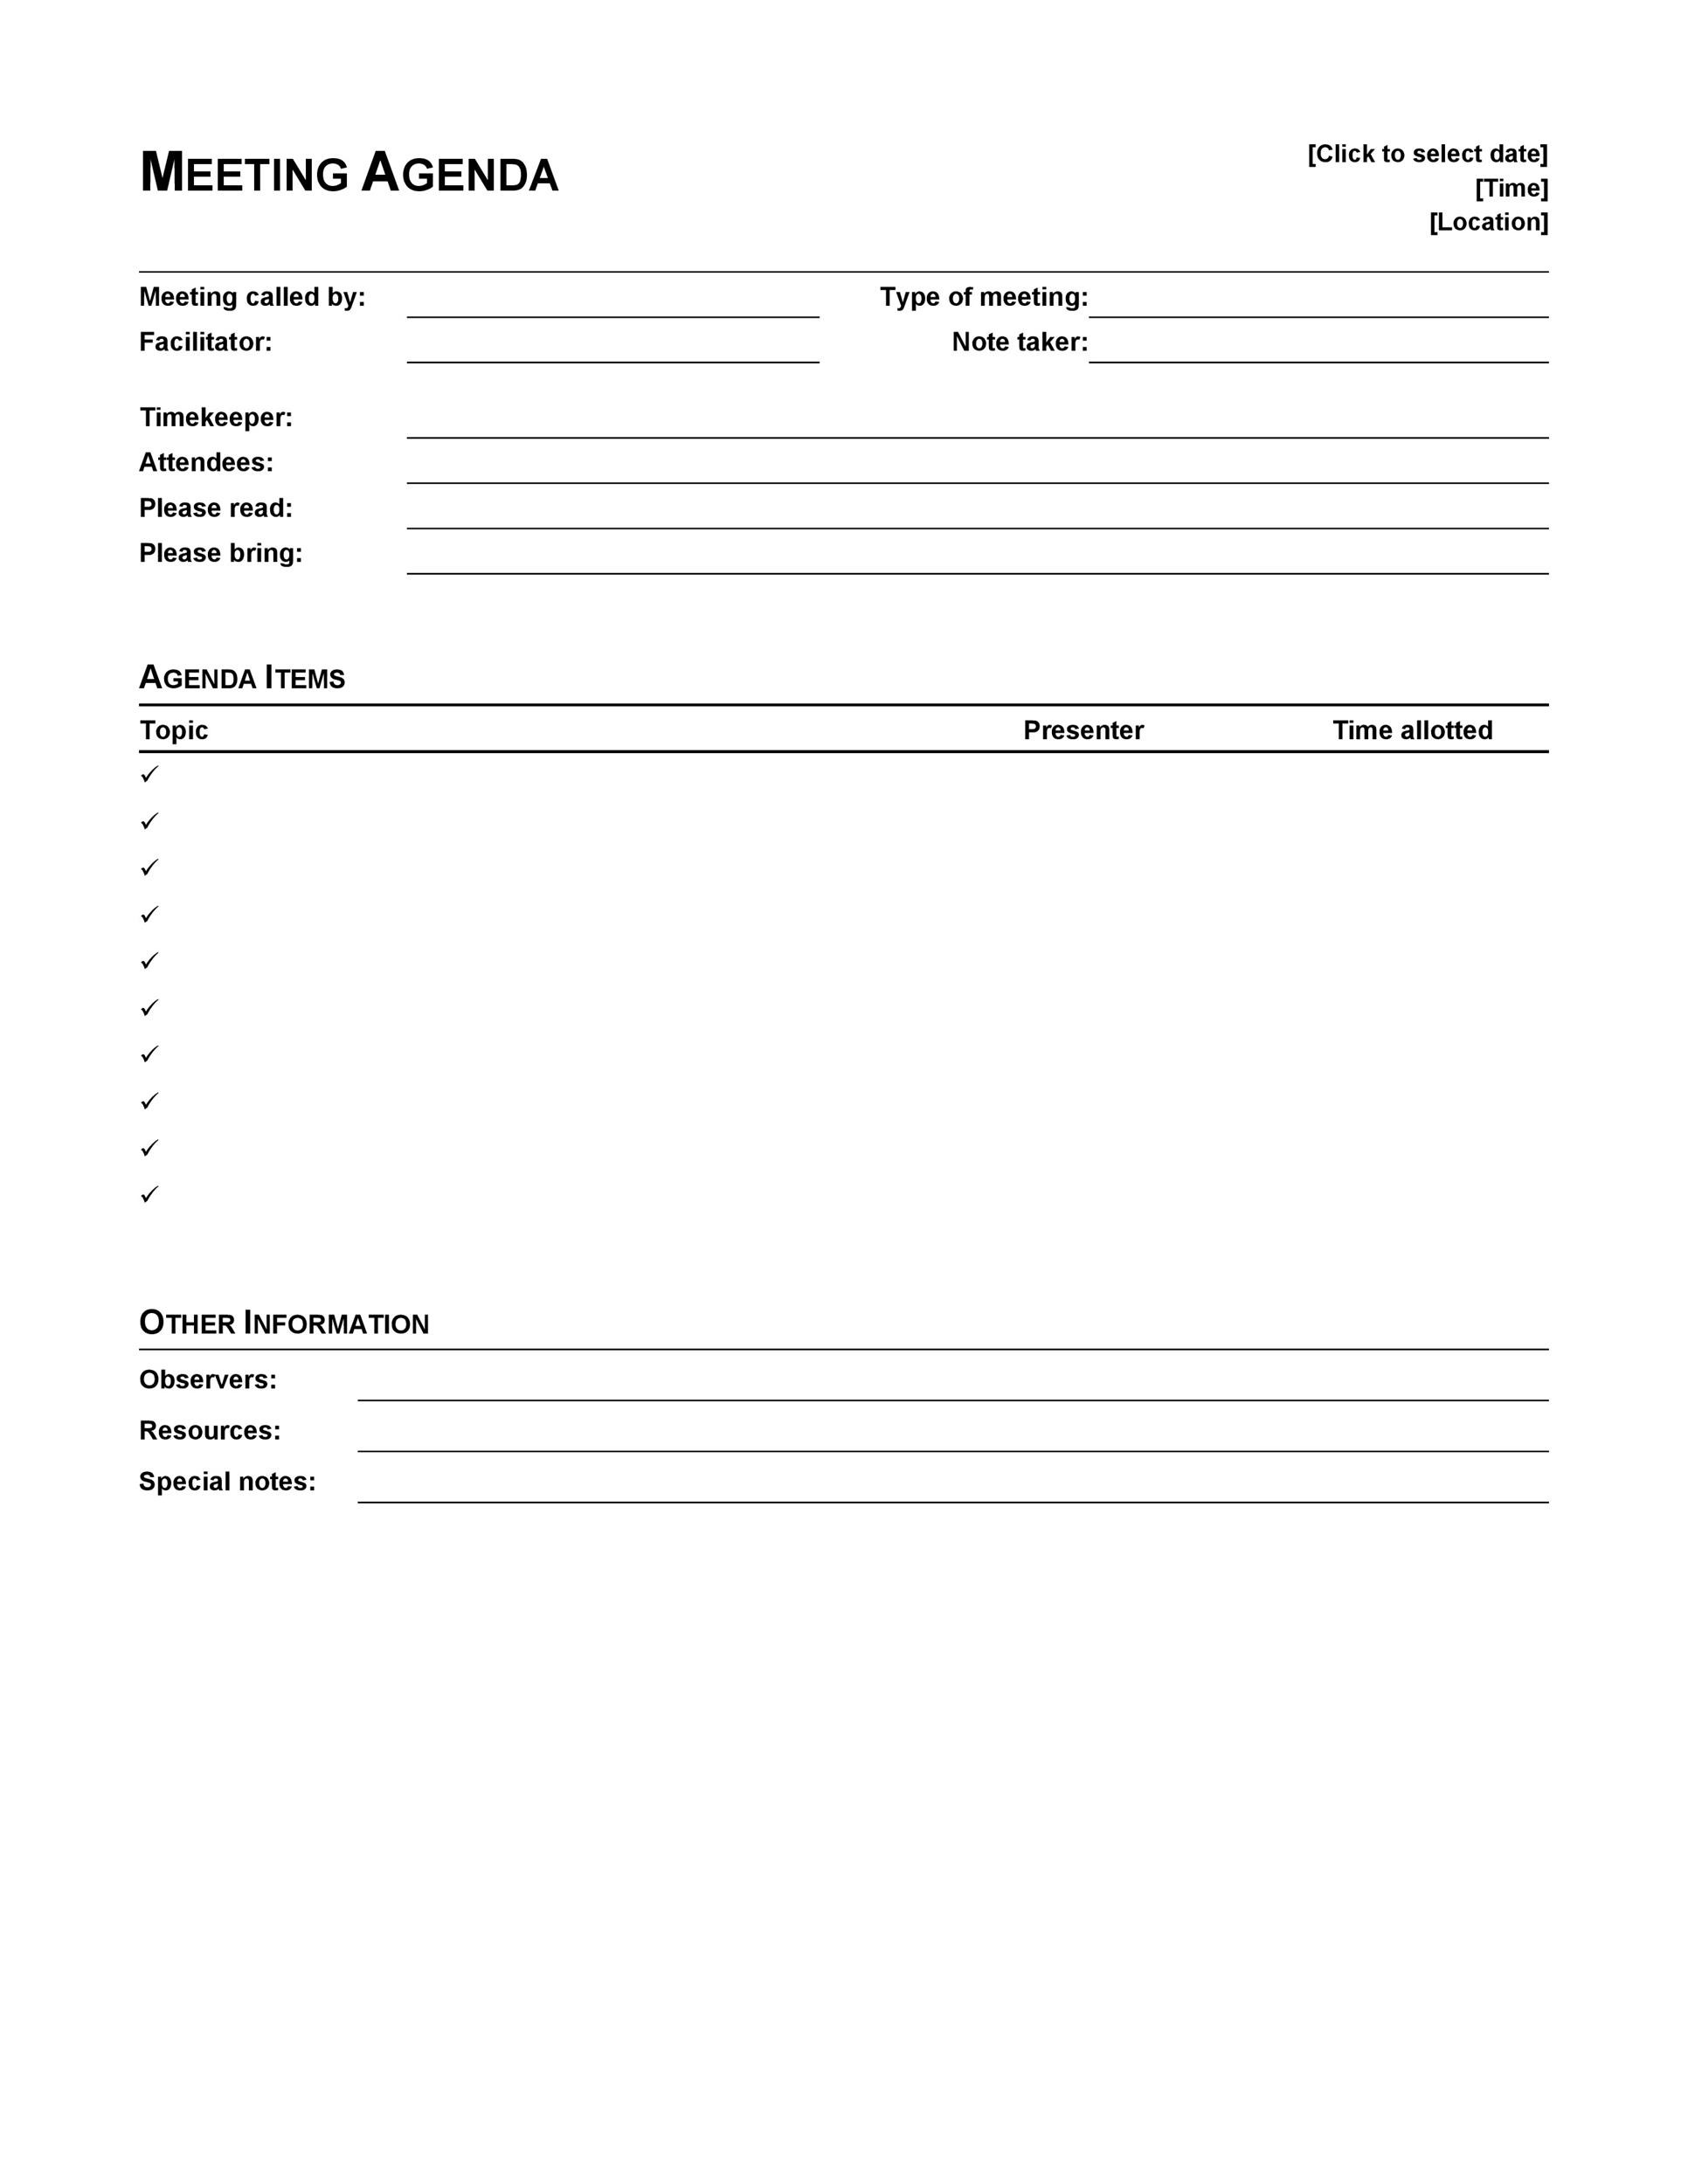 46 Effective Meeting Agenda Templates Template Lab – Templates for Agendas